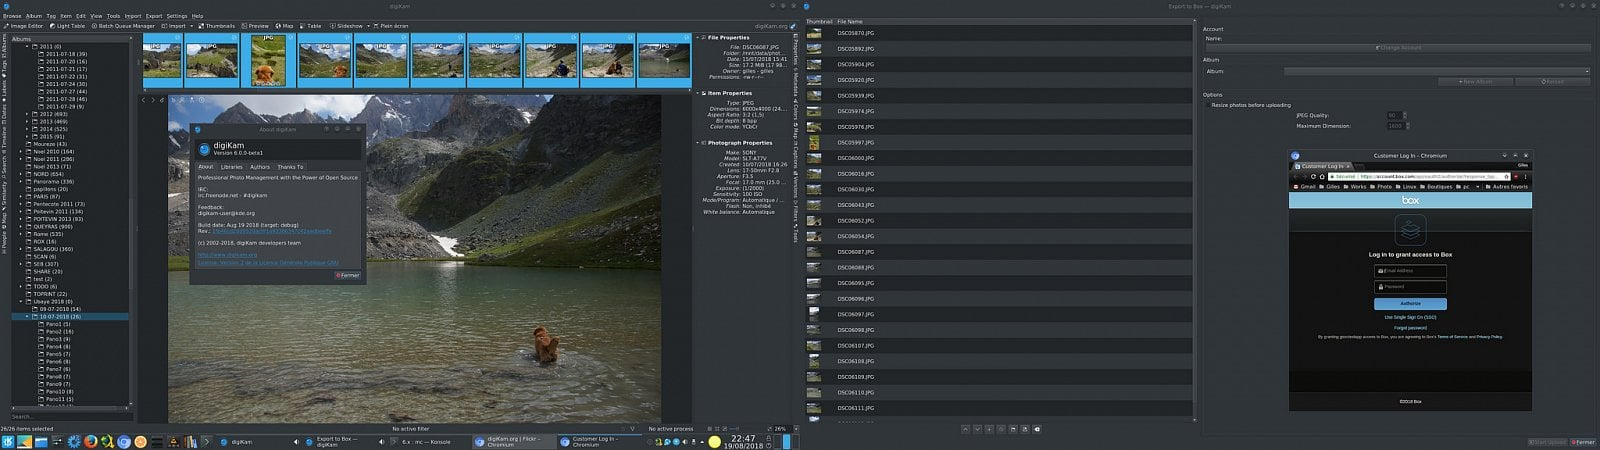 digiKam 6.0.0 beta1